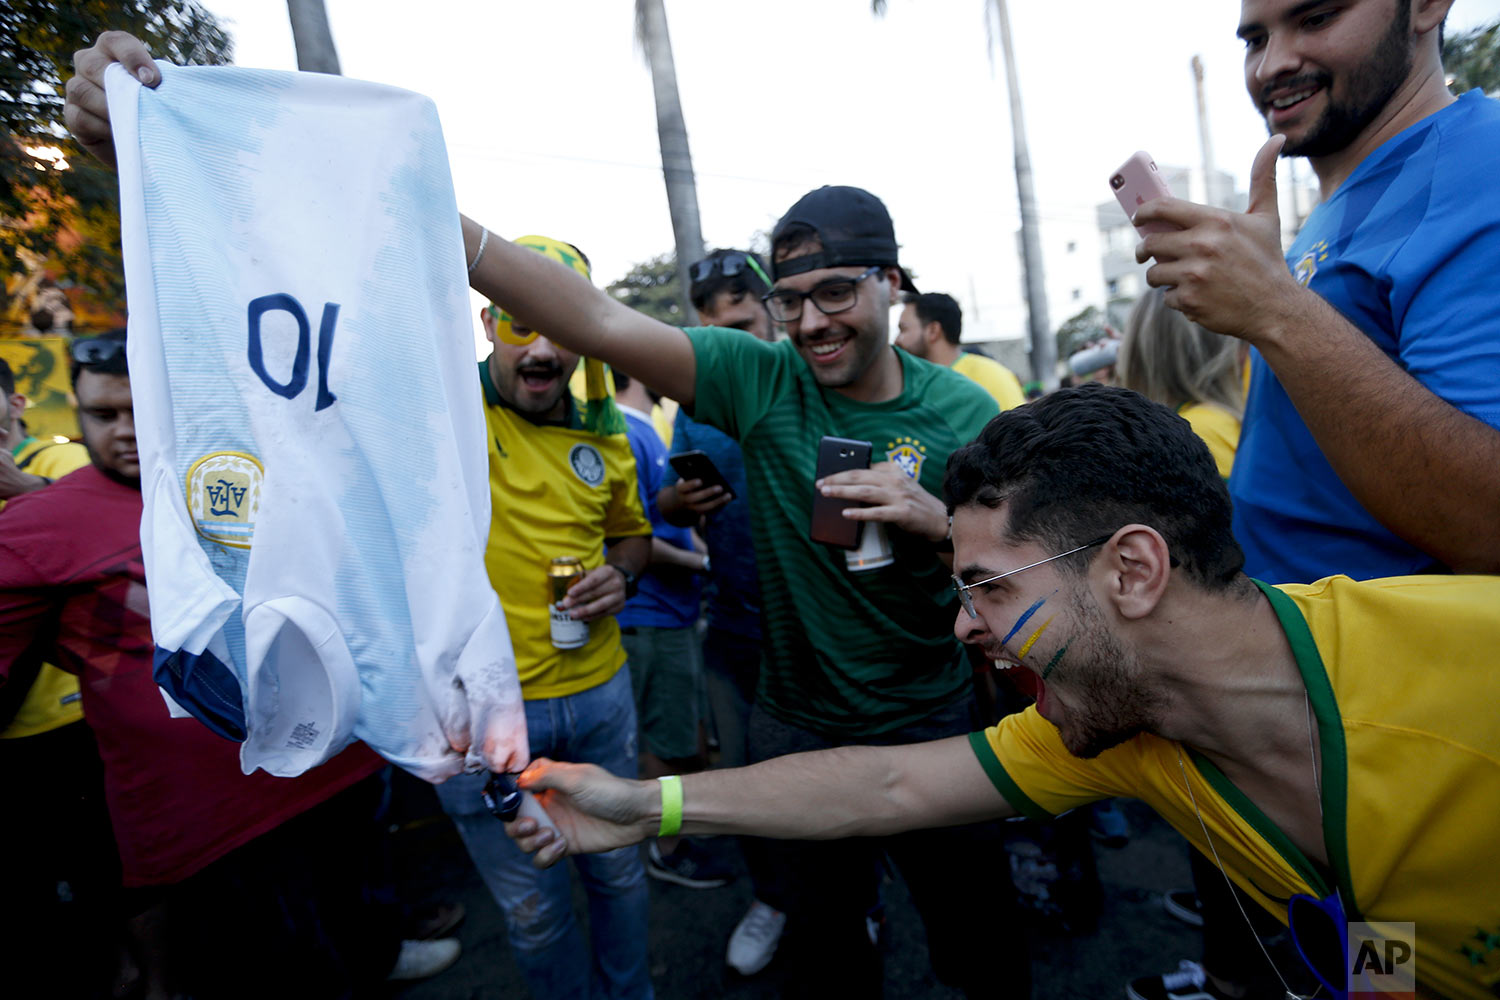 Fans of Brazil light a jersey of Argentina with the number 10, used by Lionel Messi, prior to a Copa America semifinal soccer match between Argentina and Brazil at the Mineirao stadium in Belo Horizonte, Brazil, Tuesday, July 2, 2019. (AP Photo/Natacha Pisarenko)